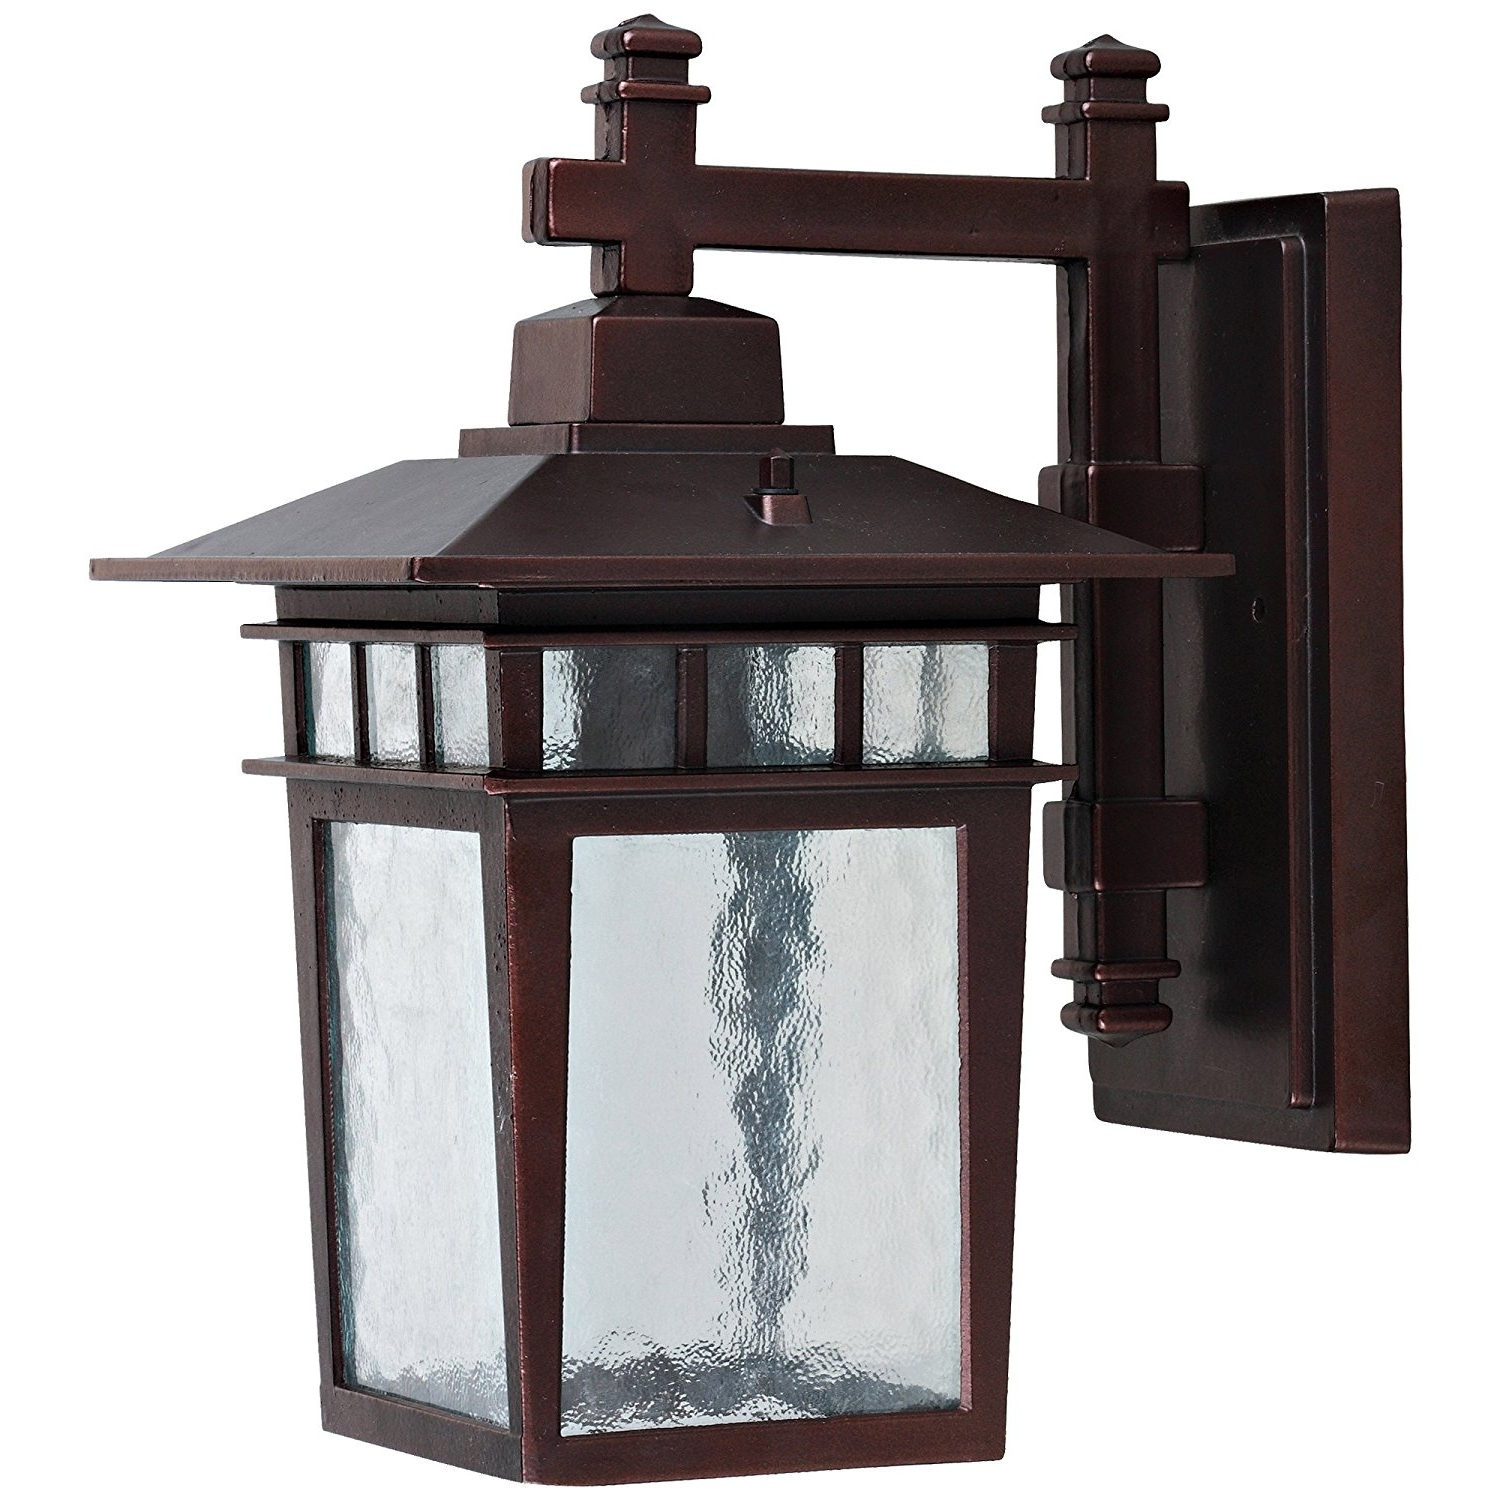 Modern Garden Porch Light Fixtures At Wayfair With Famous Outdoor : Outside Wall Lamps Outdoor Sconce Light Fixtures Flush (View 8 of 20)